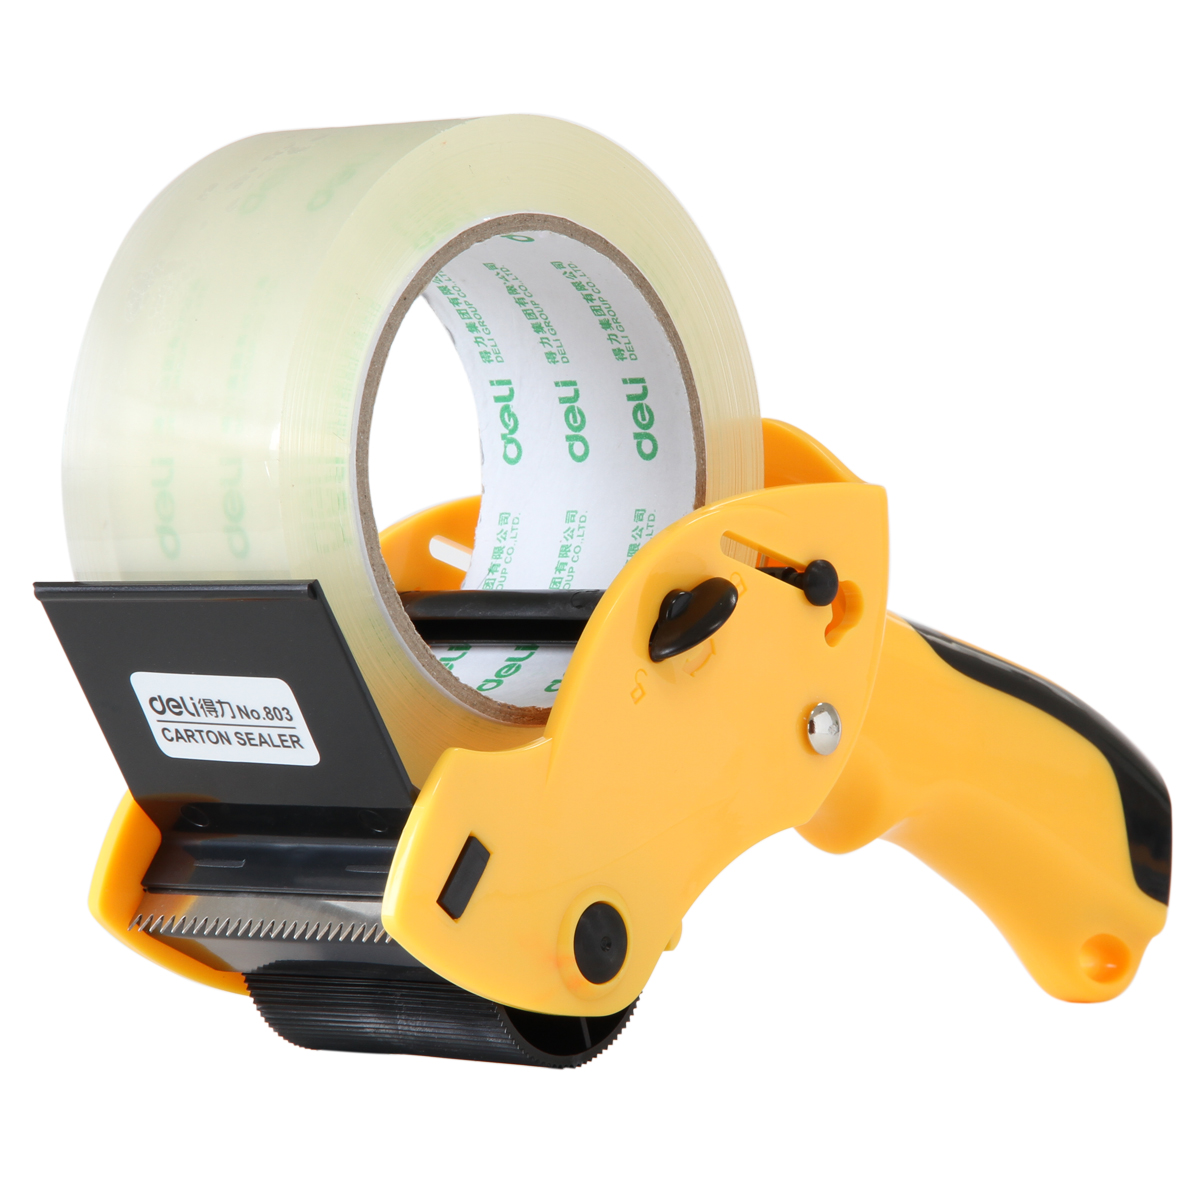 Deli 803 sealing device packing tape cutter cutter metal sealing tape packing tape cutting